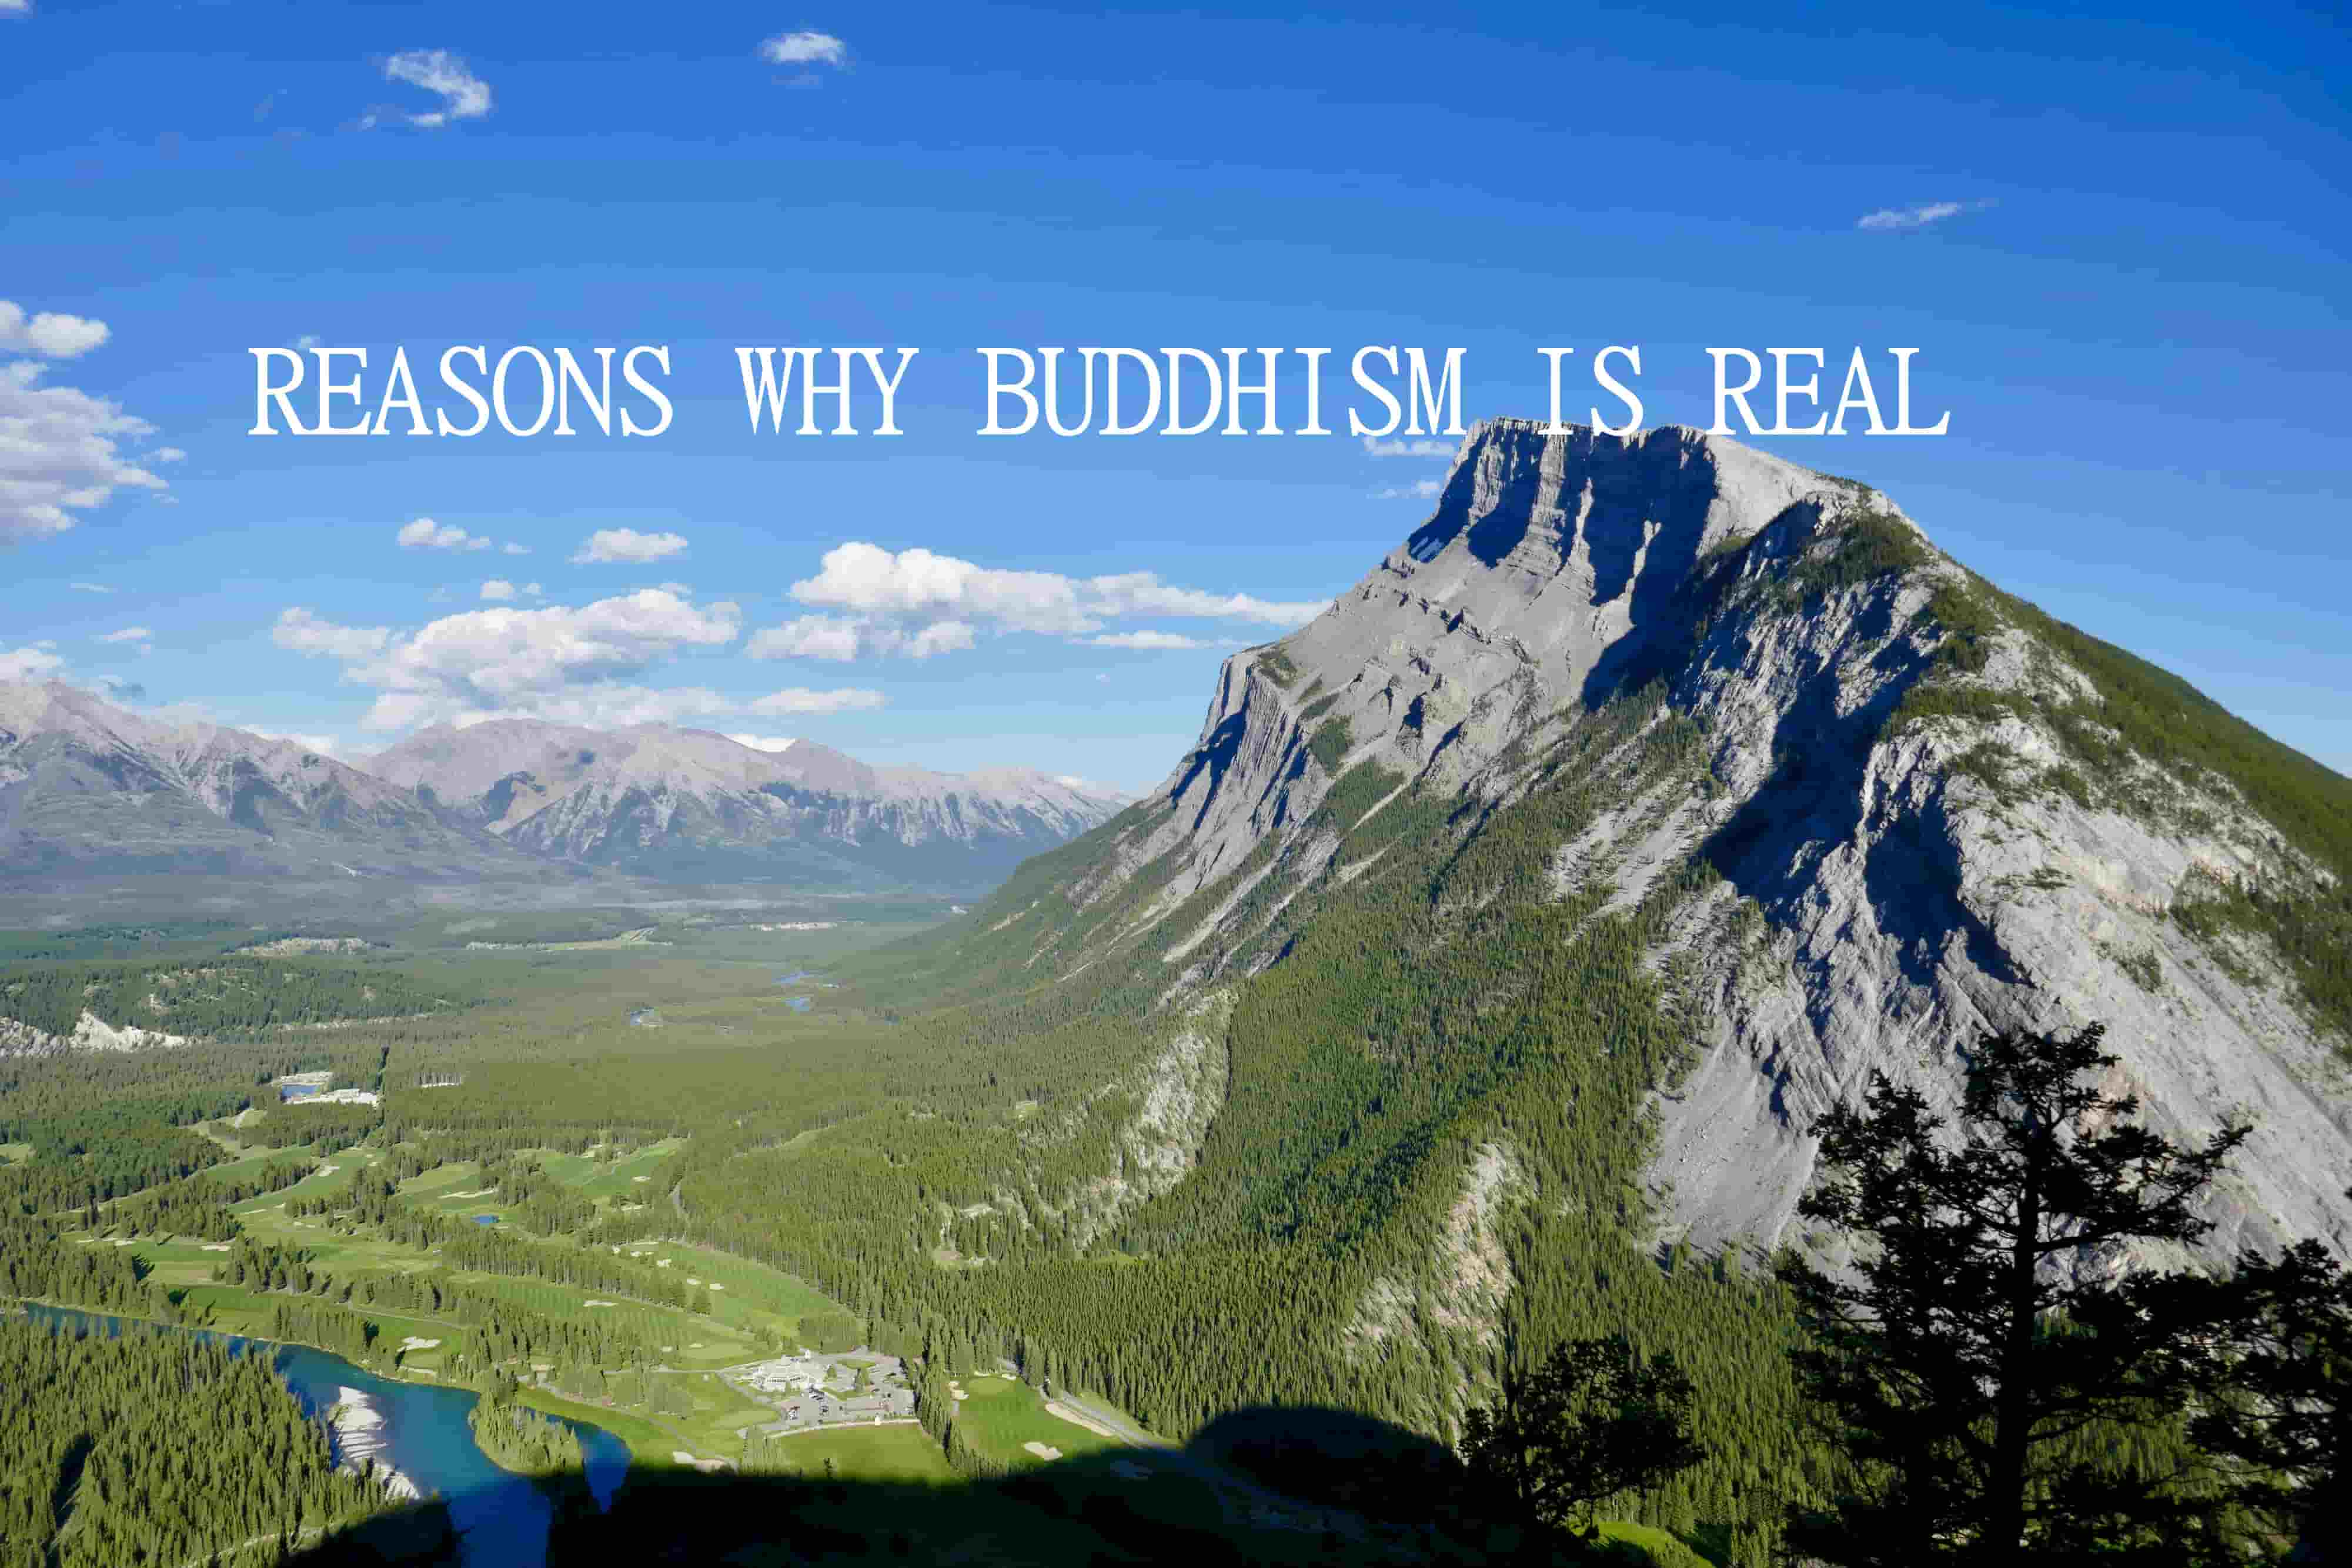 REASONS WHY BUDDHISM IS REAL